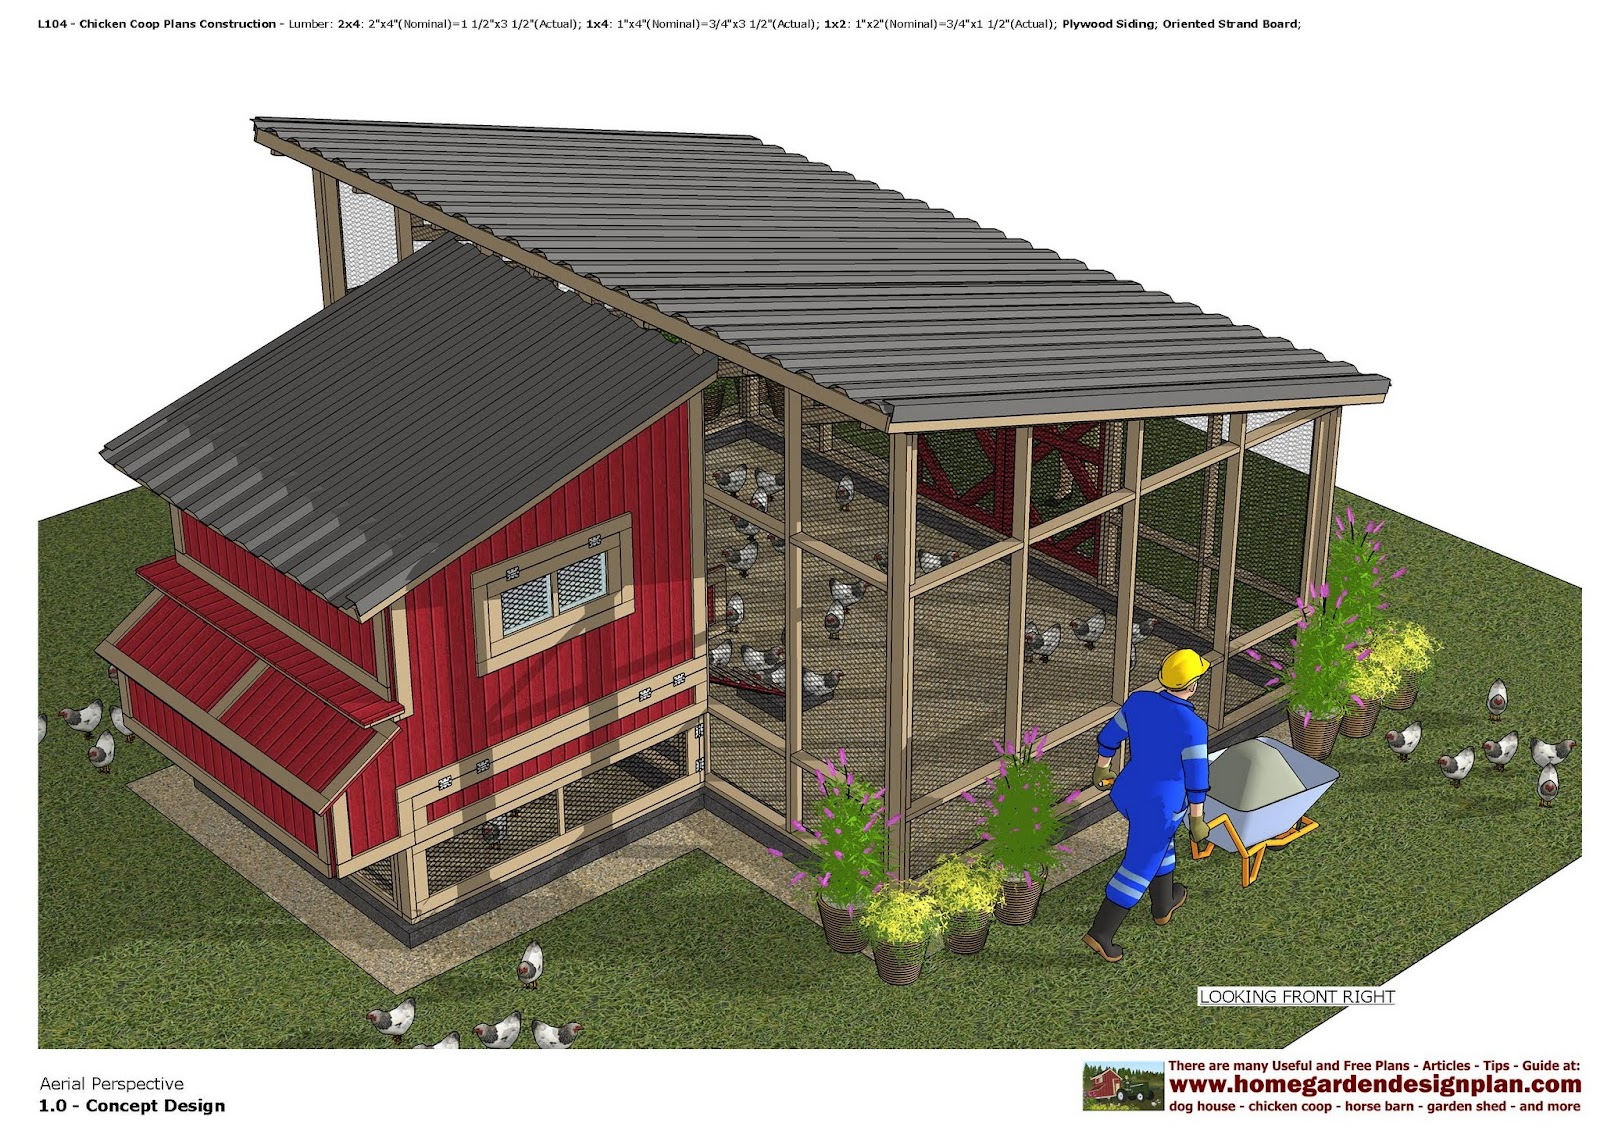 Home garden plans chicken coops for Chicken coop for 8 10 chickens